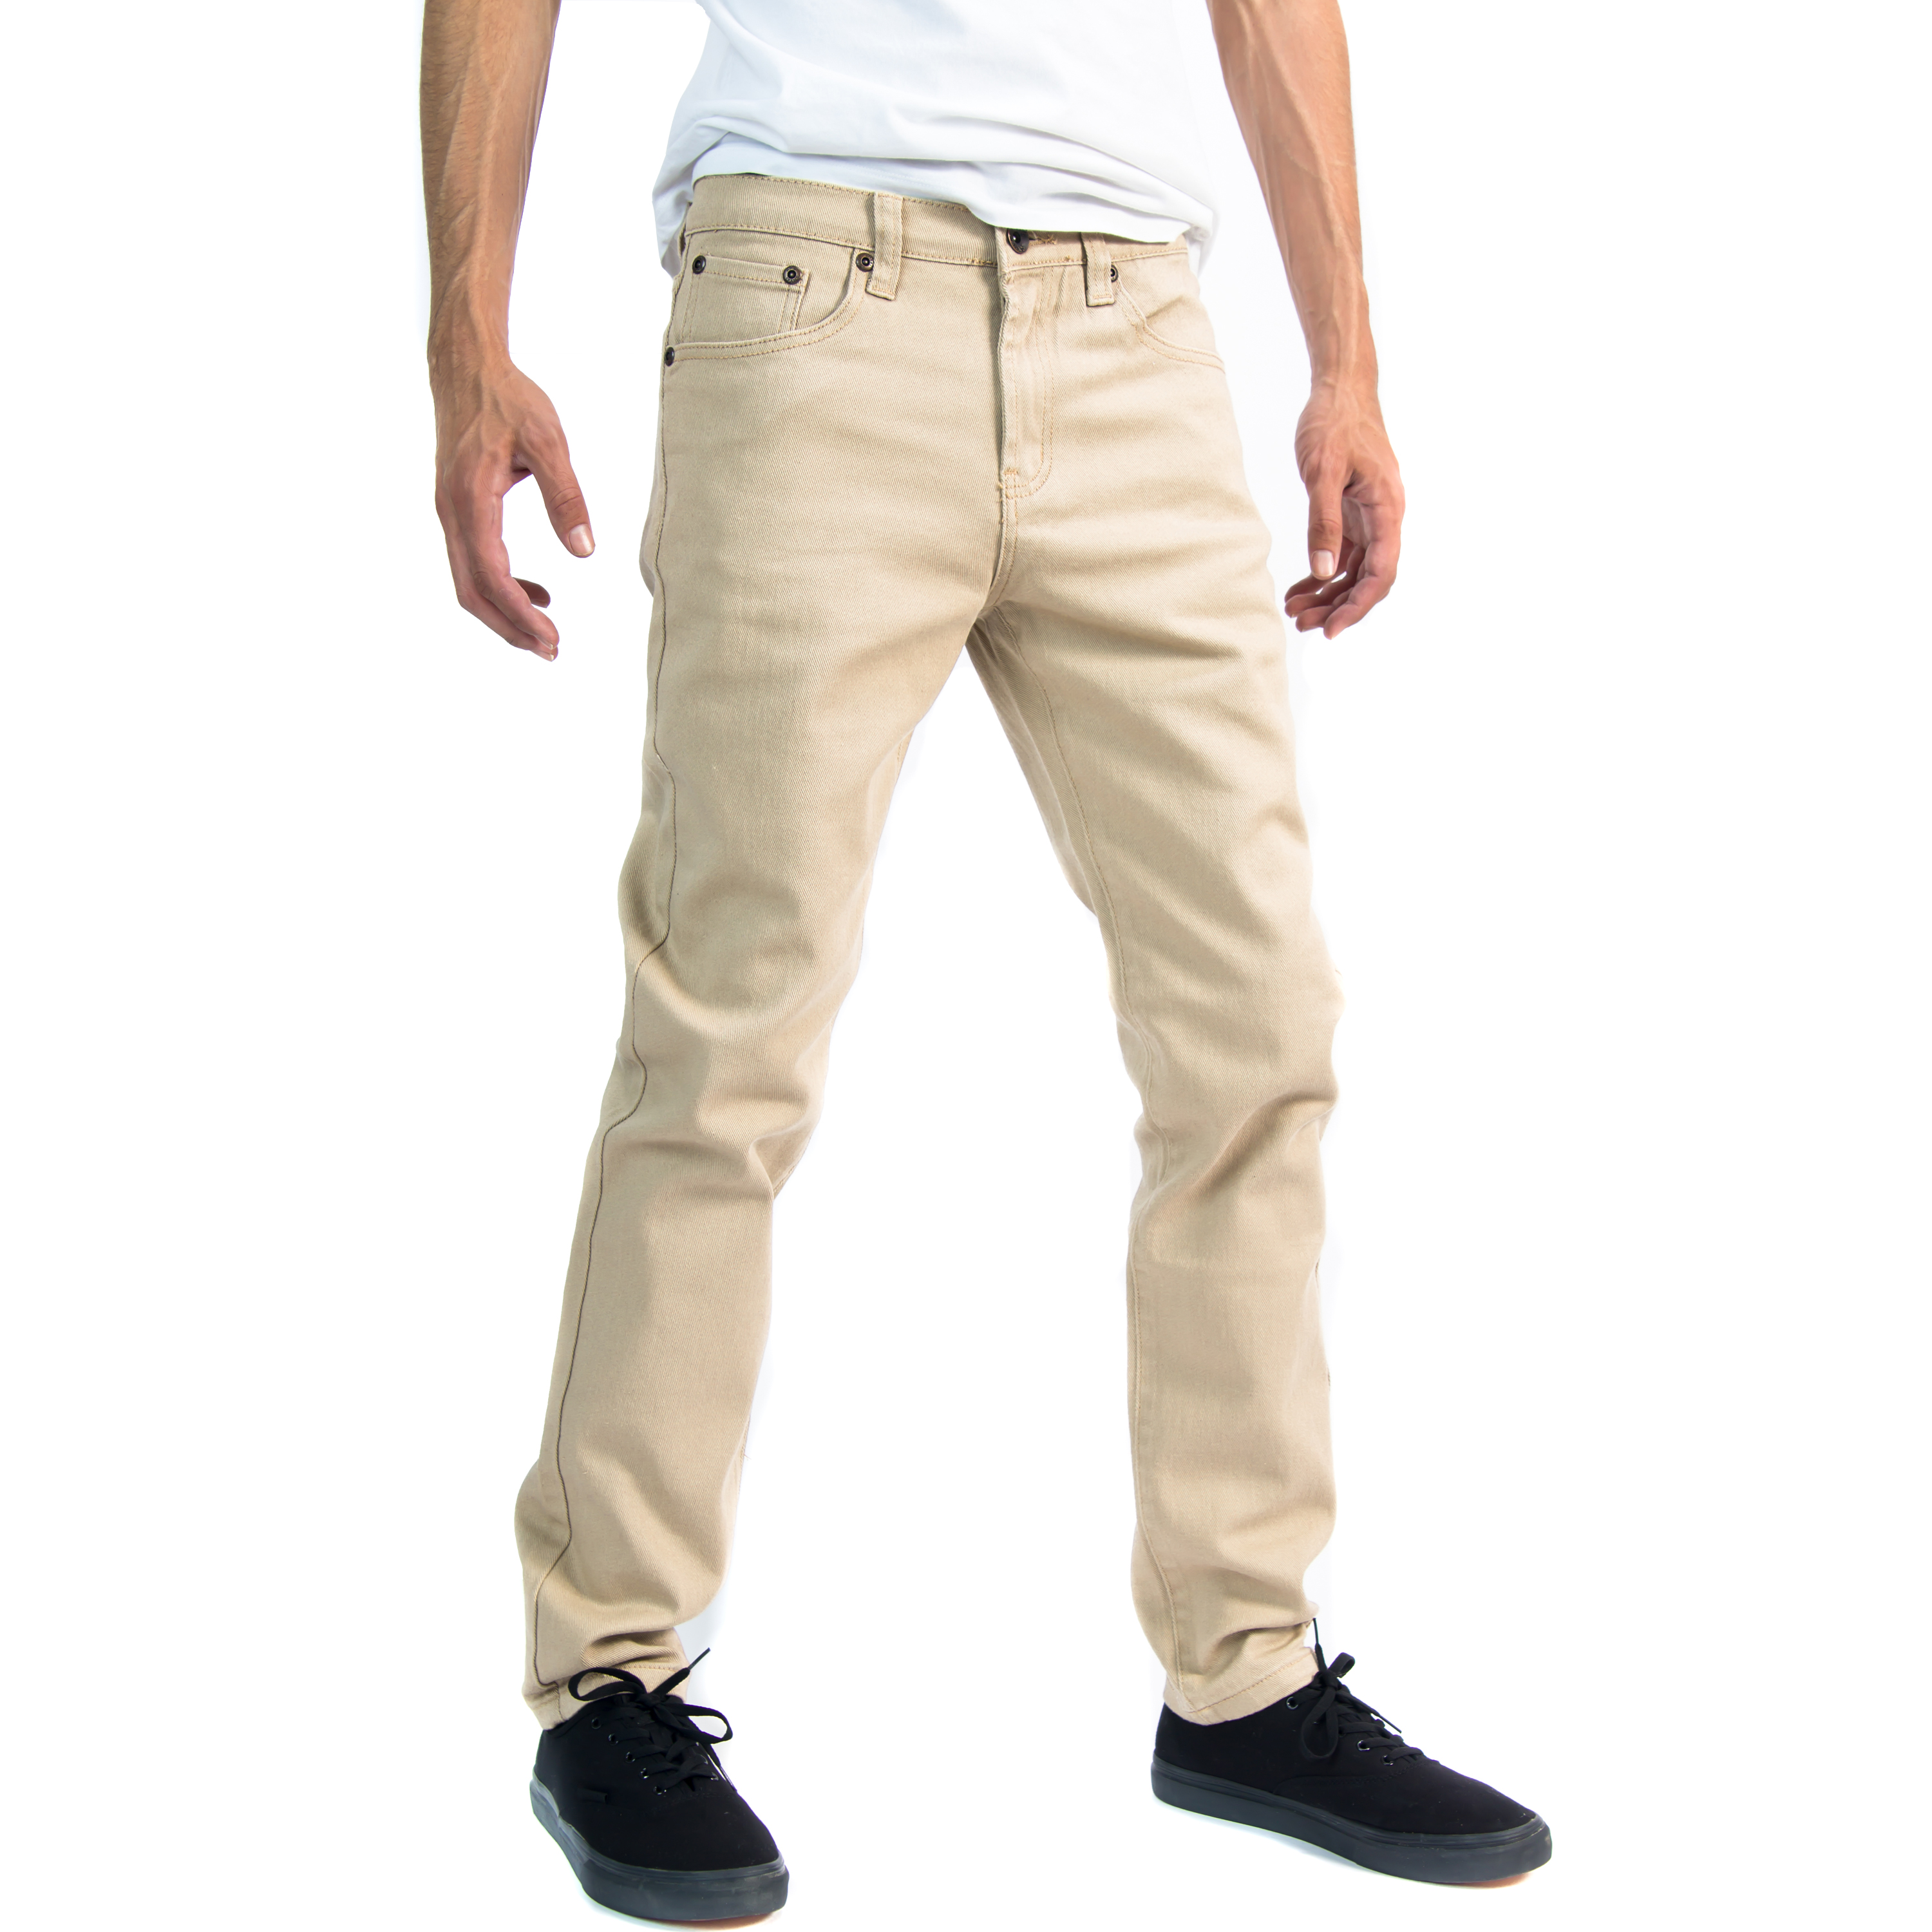 Premium Designer Fashion Mens Slim Fit Skinny Denim Jeans - Multiple Styles